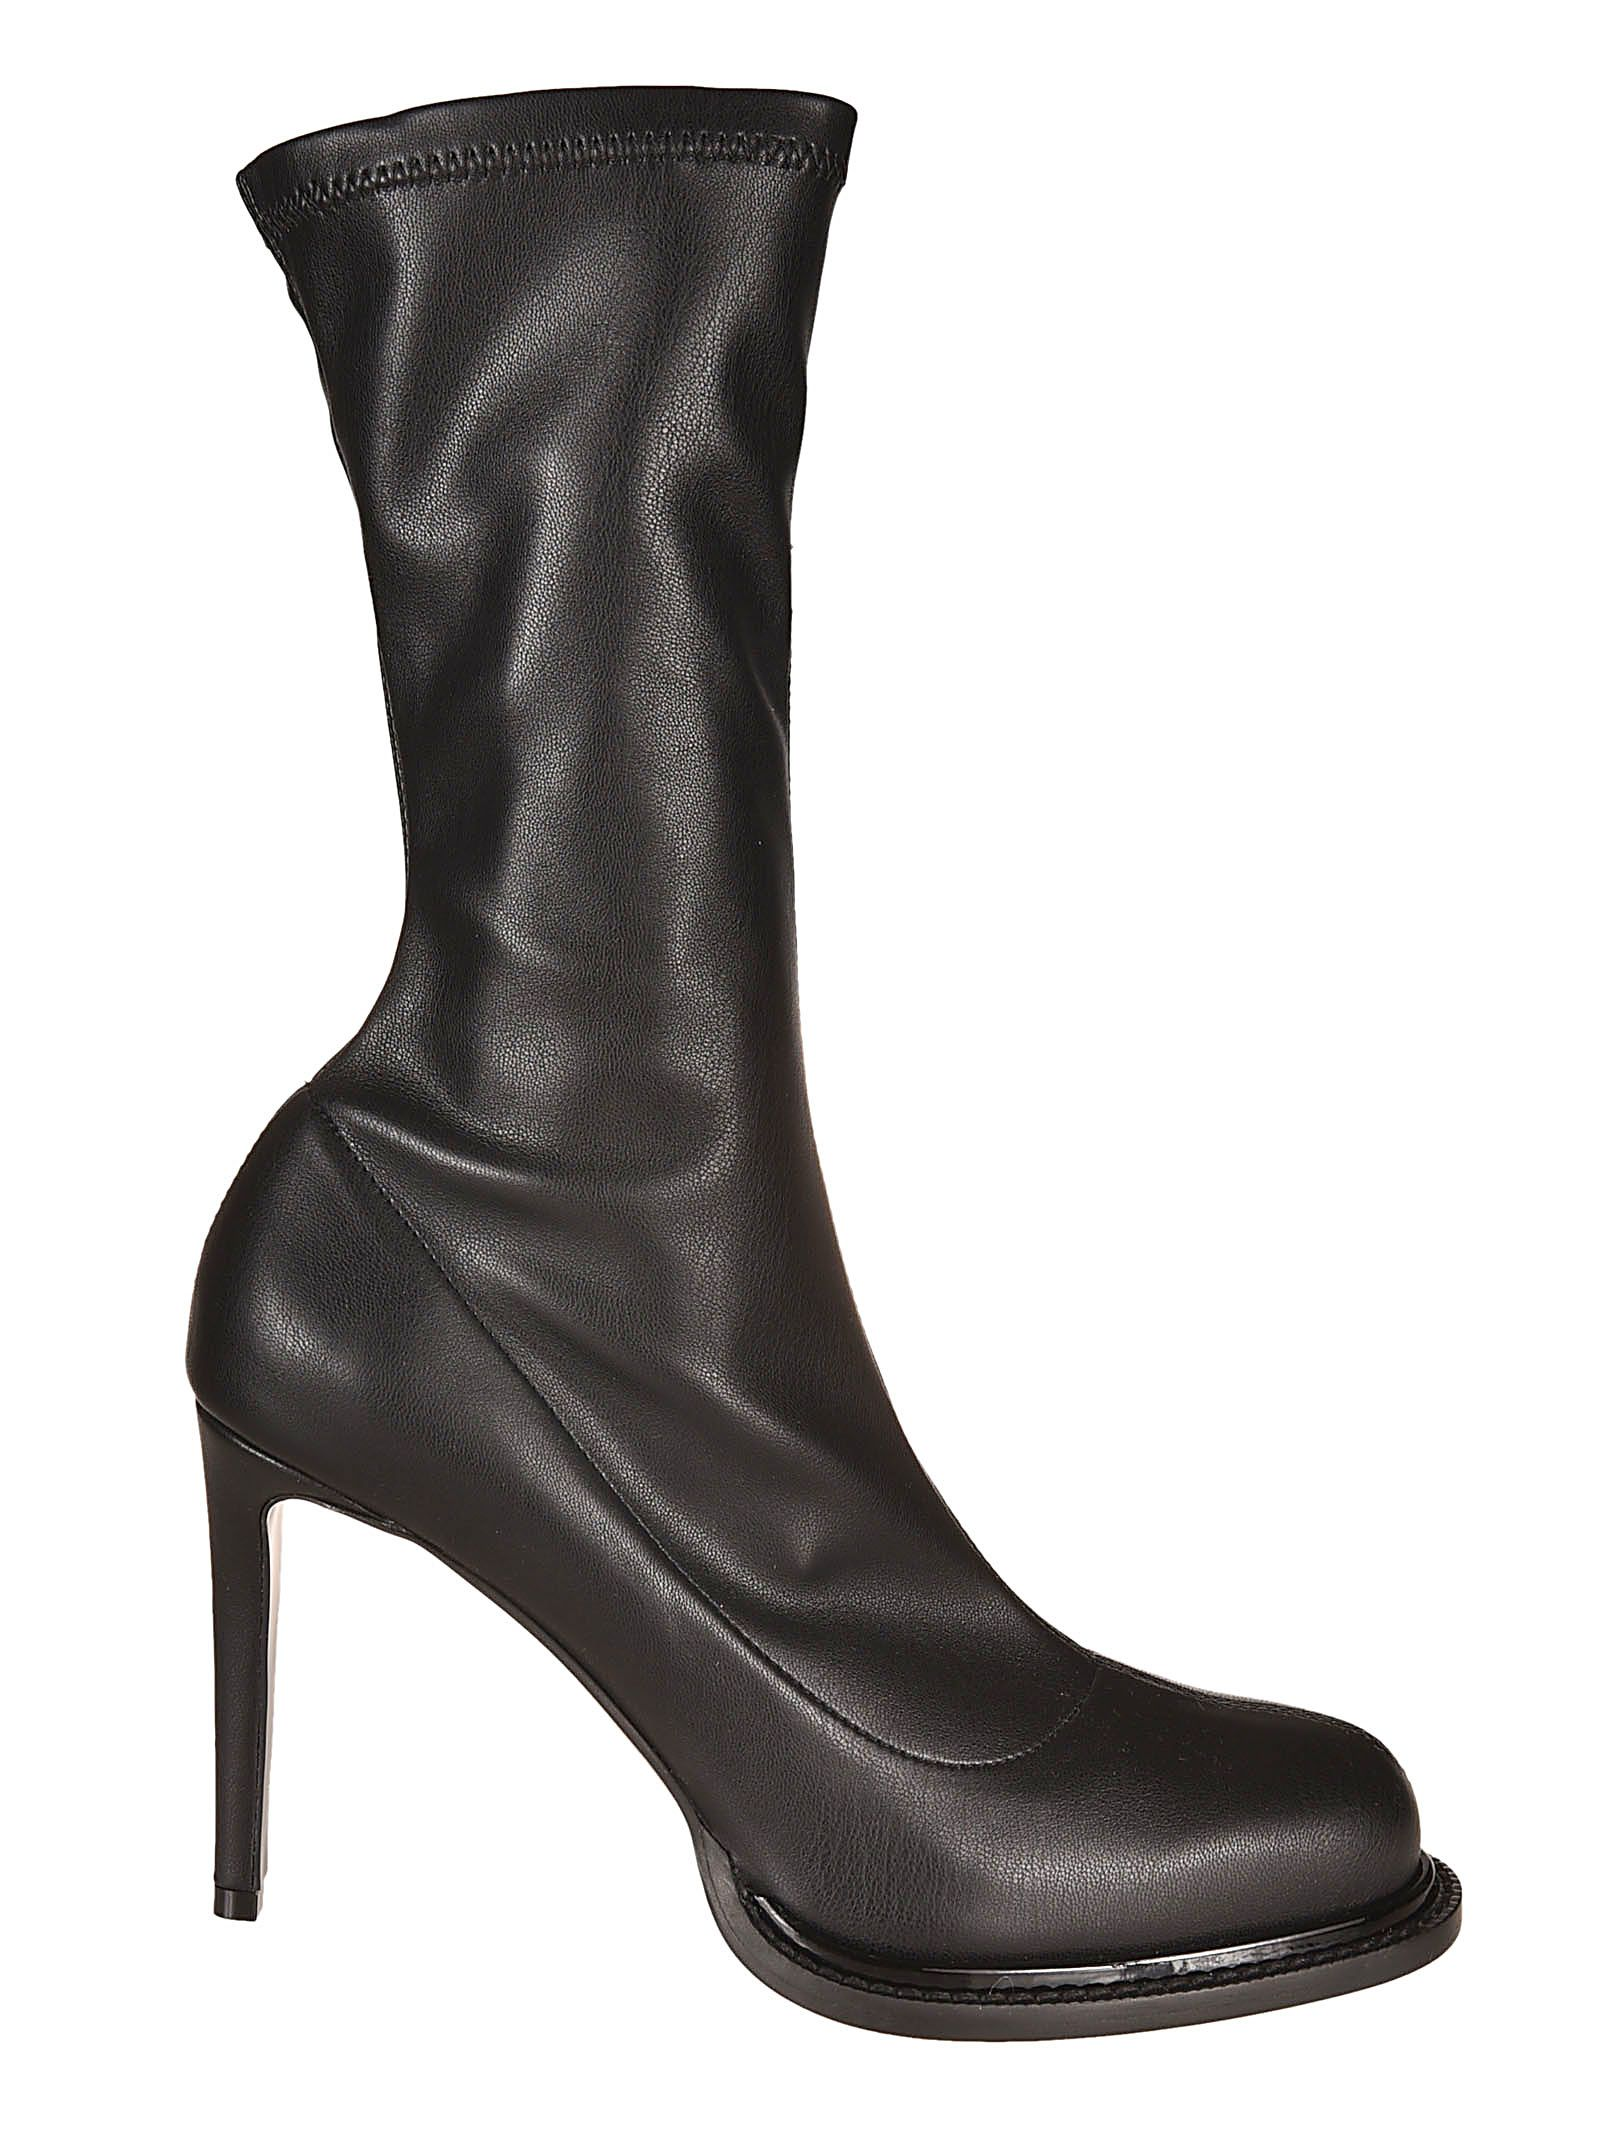 PALMER ANKLE BOOTS